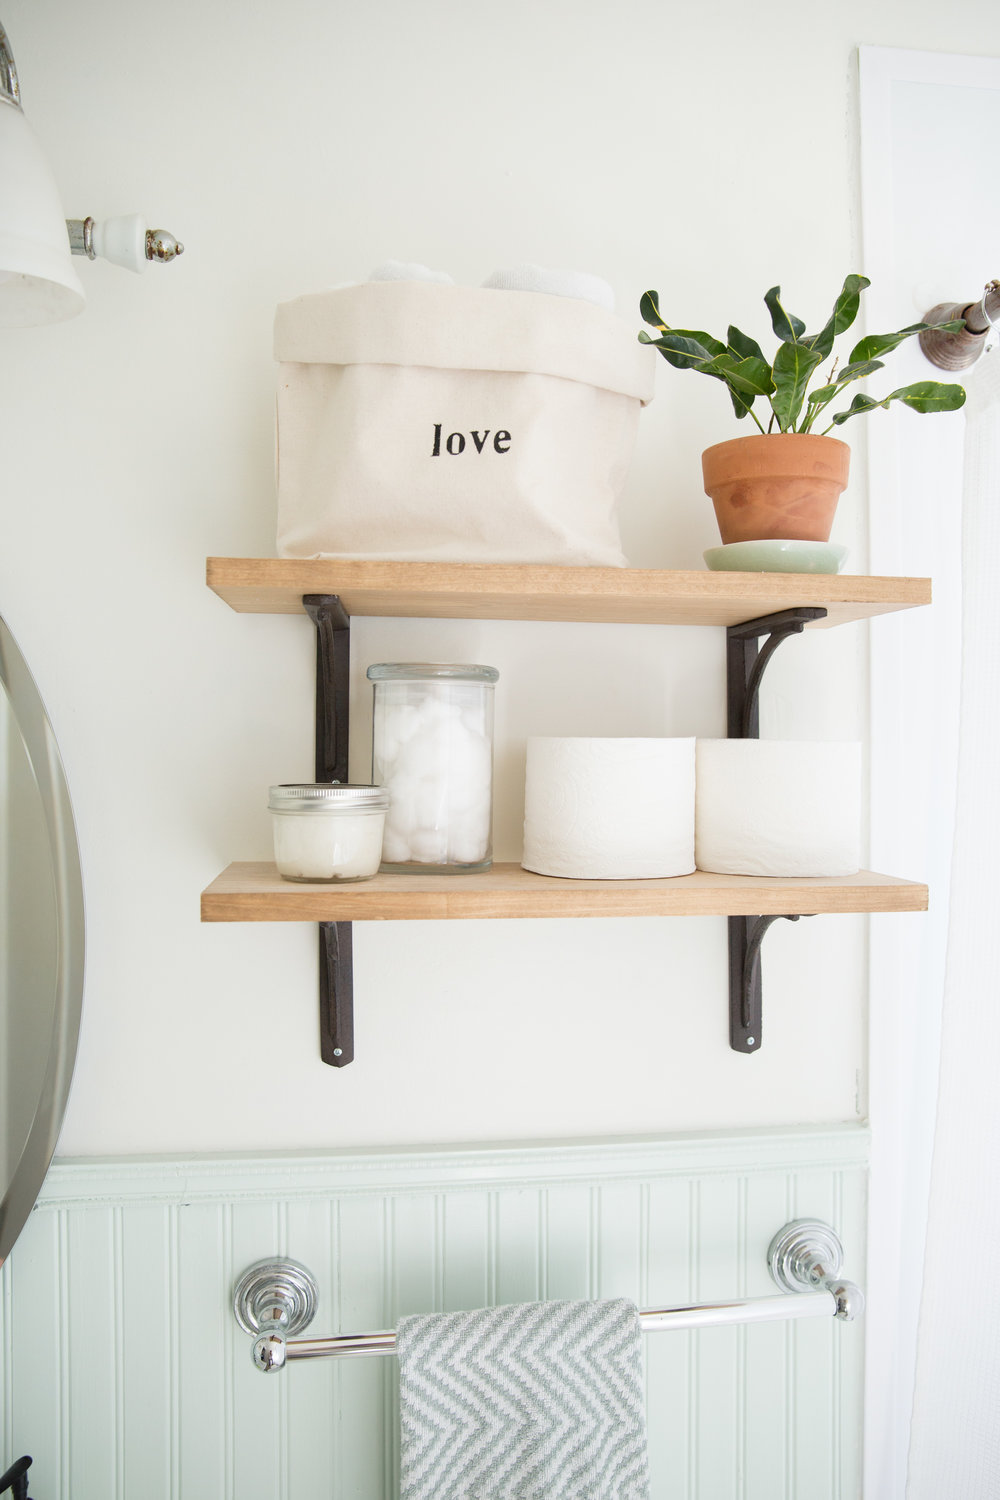 DIY wood wall shelves with metal brackets